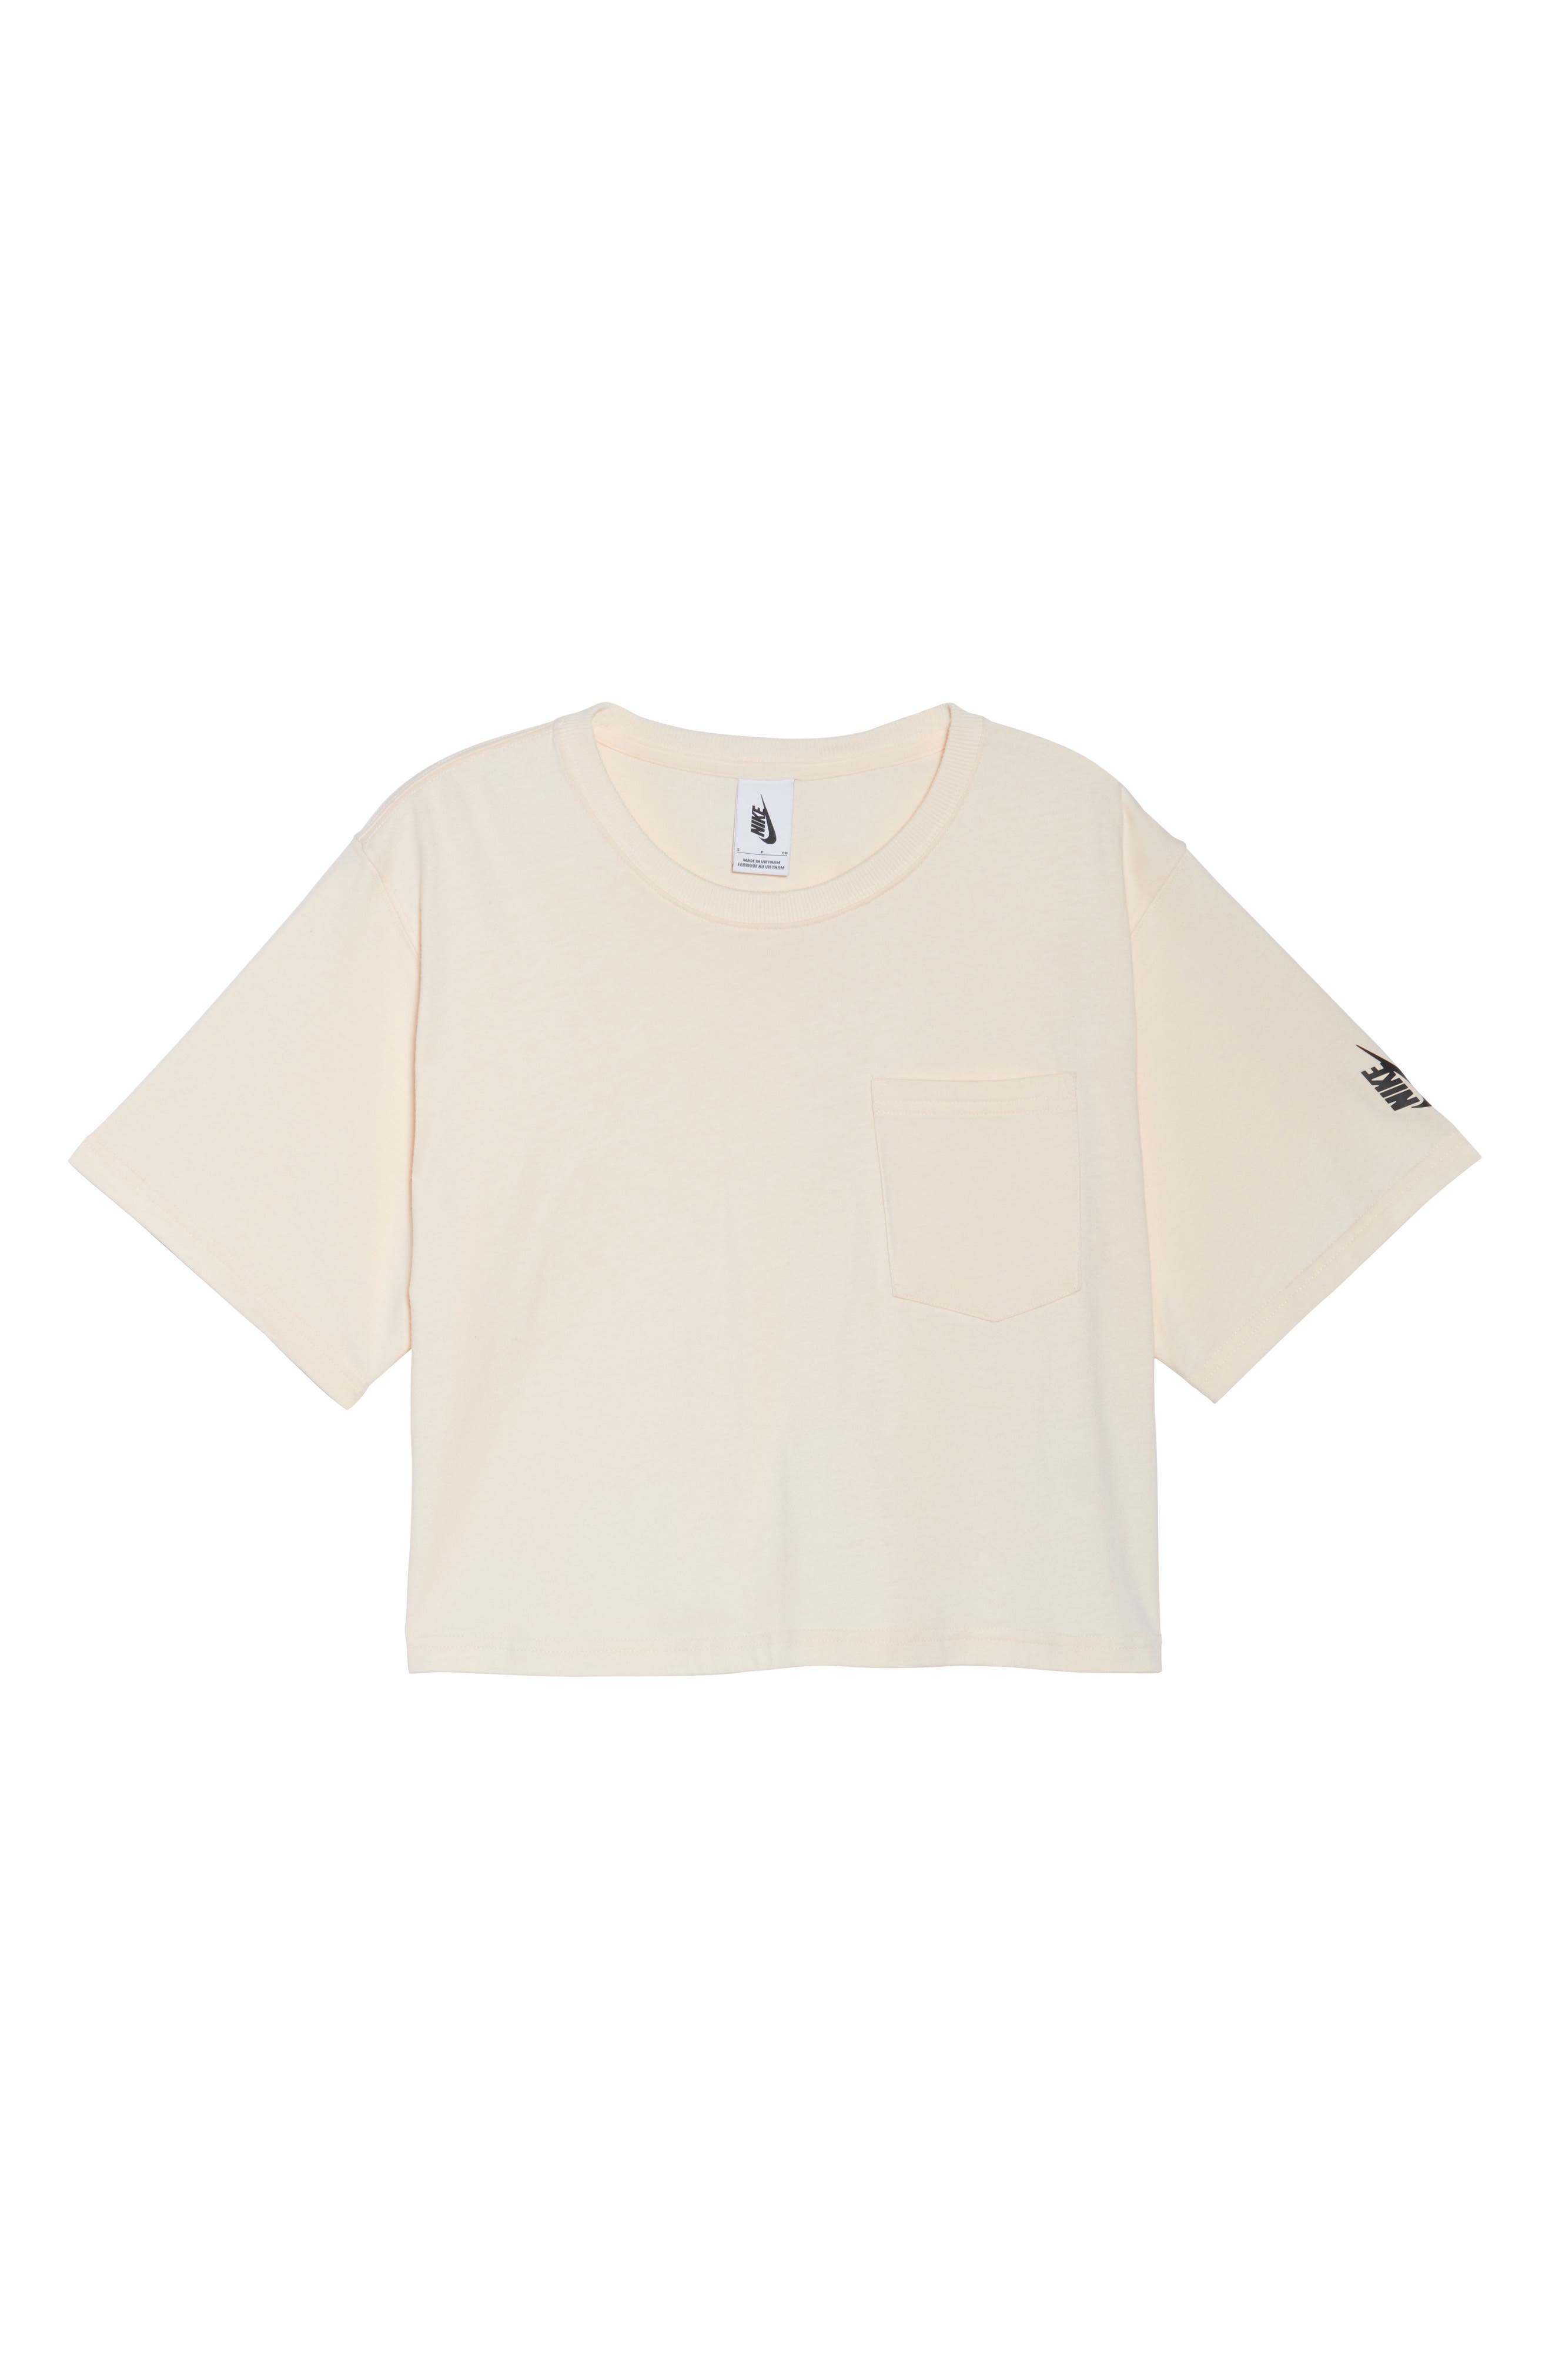 NikeLab Collection Crop Tee,                             Alternate thumbnail 7, color,                             Guava Ice/ Black